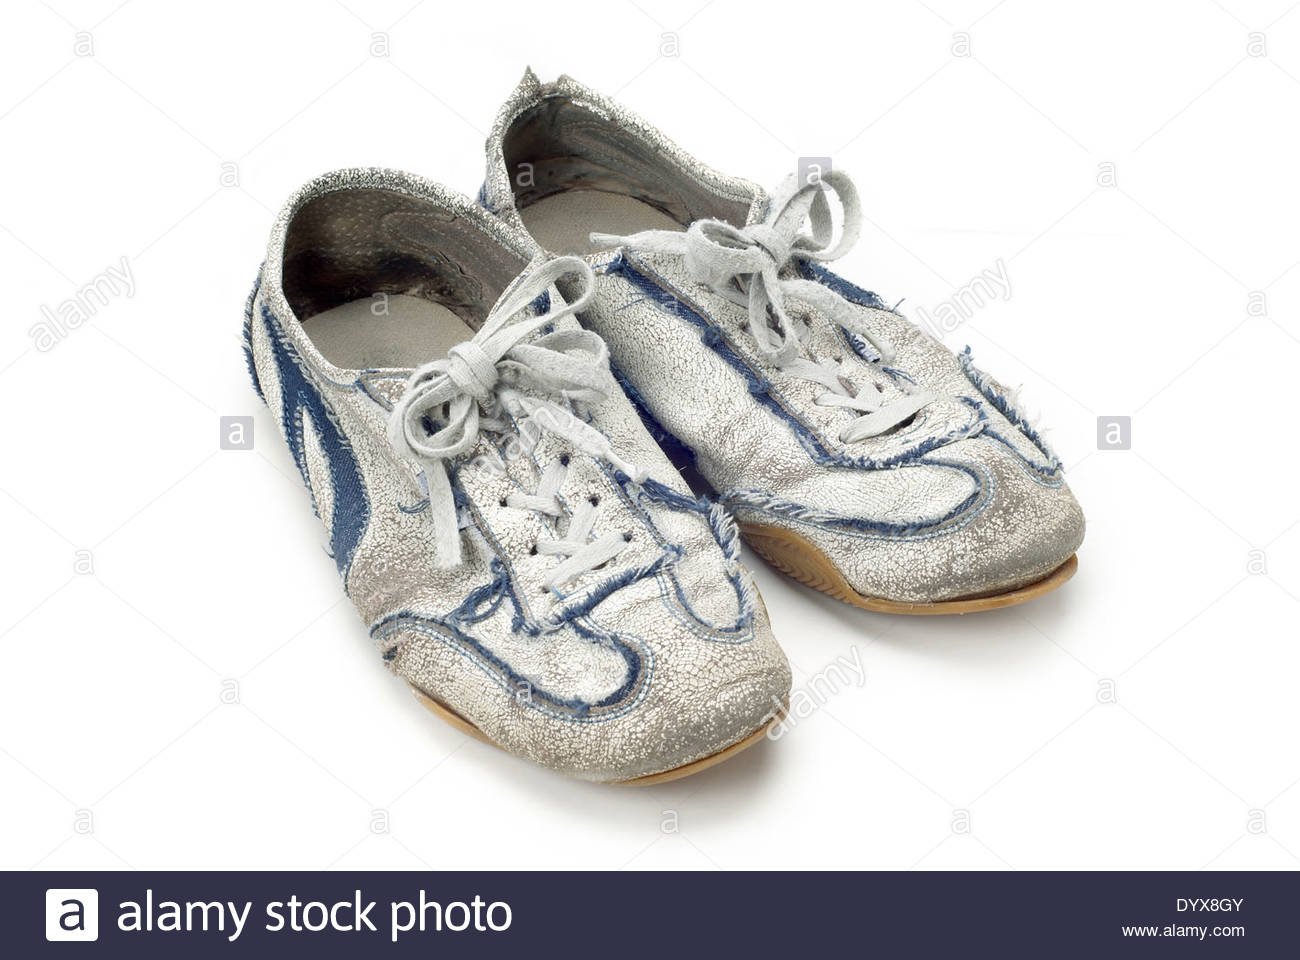 A pair of worn out trainers isolated on white - Stock Image